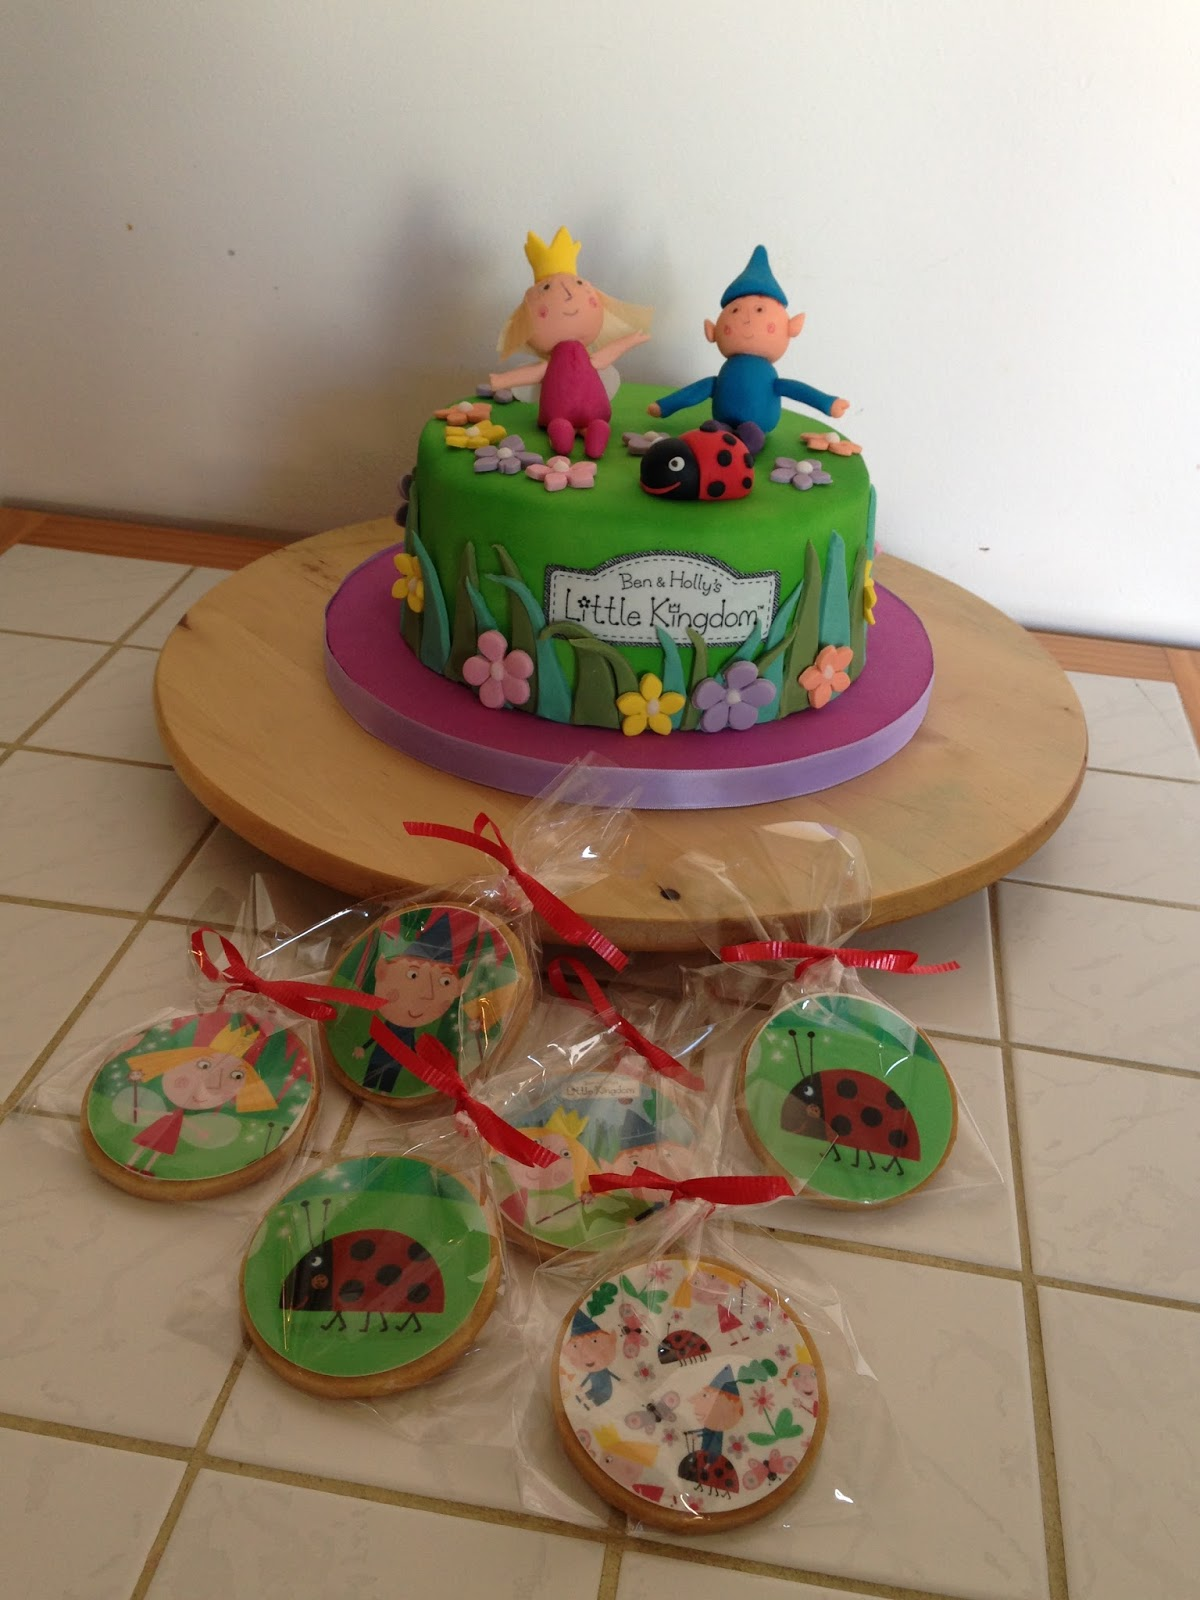 Tutorial De Galletas Decoradas Con Glasa Nats Cakes: Tarta Ben Y Holly